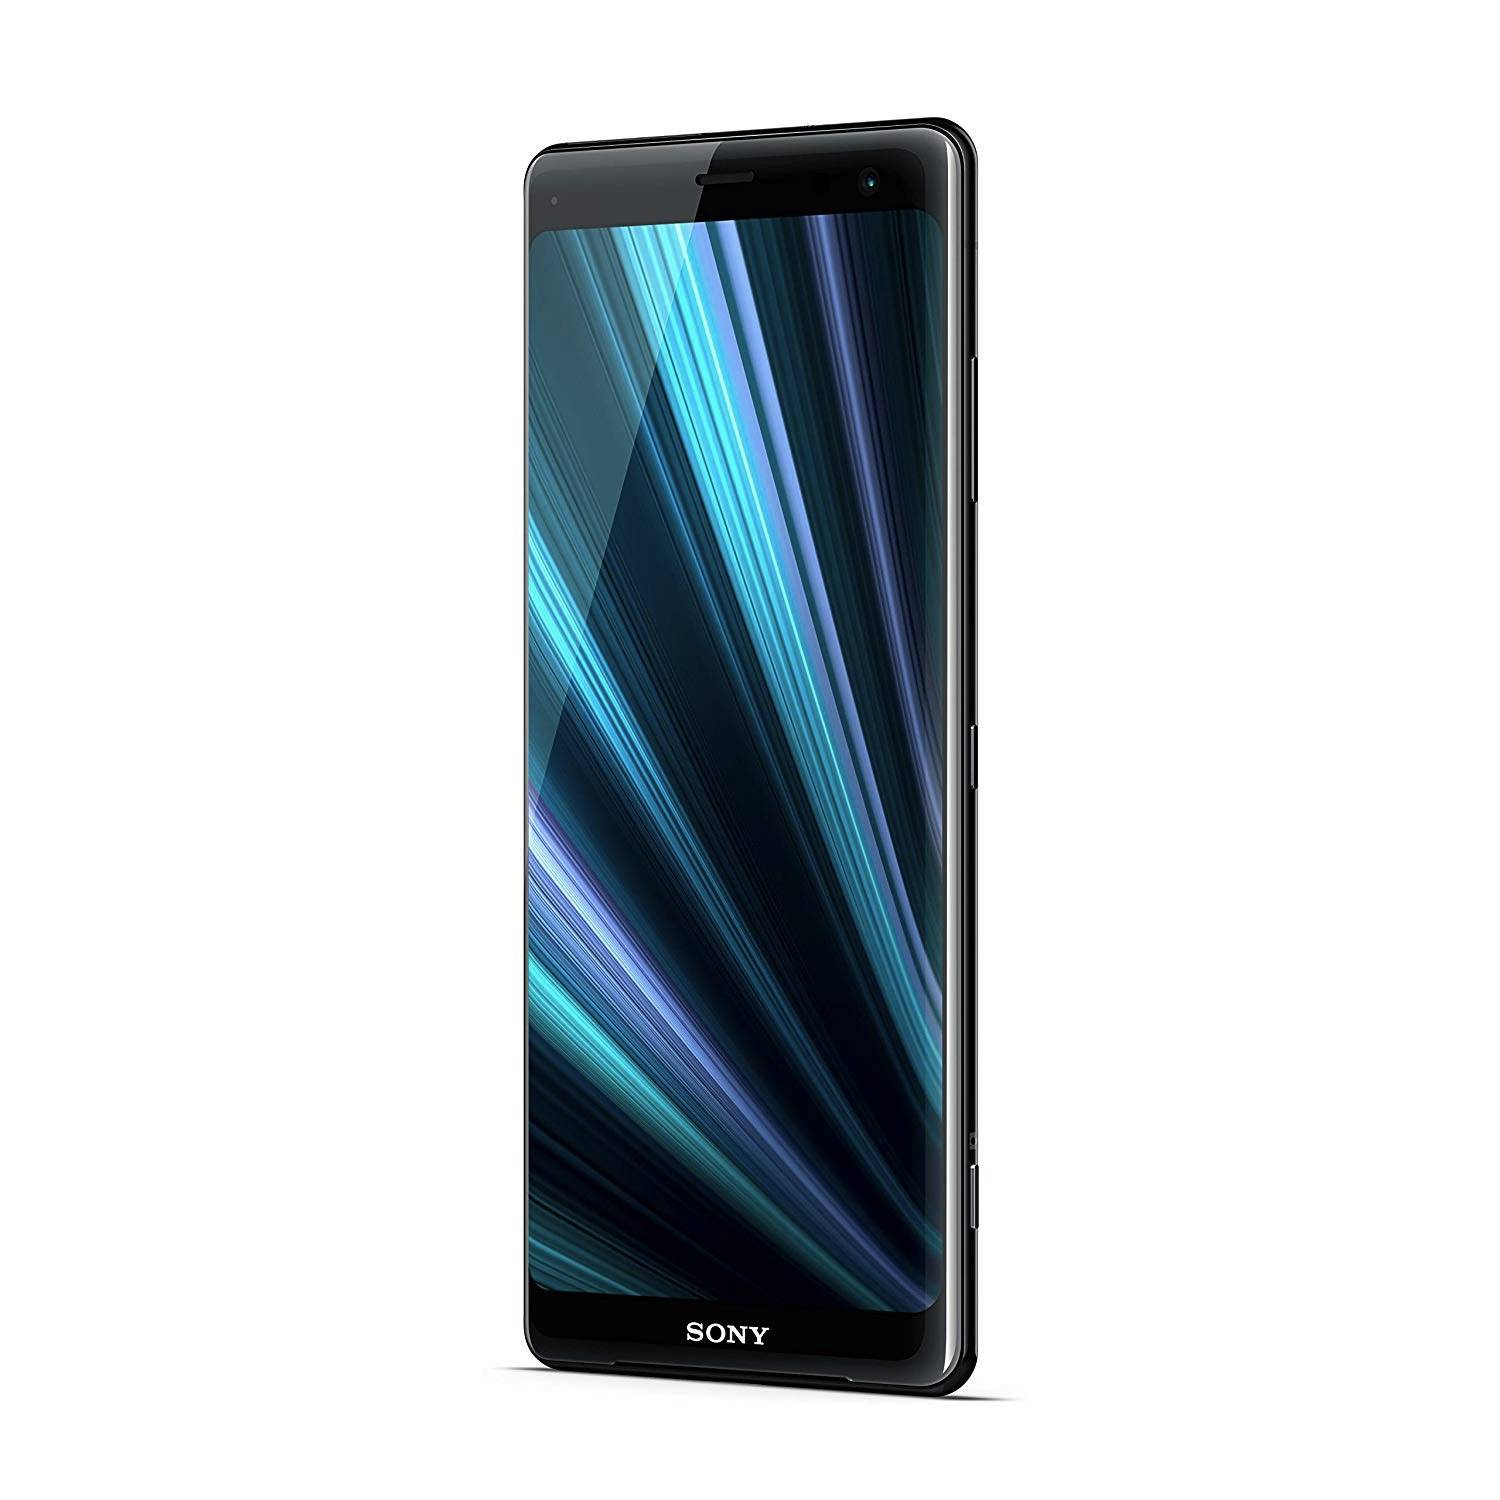 Sony Phone On Amazon Sony Xperia Xz3 On Amazon Ready For Pre Order Shipping